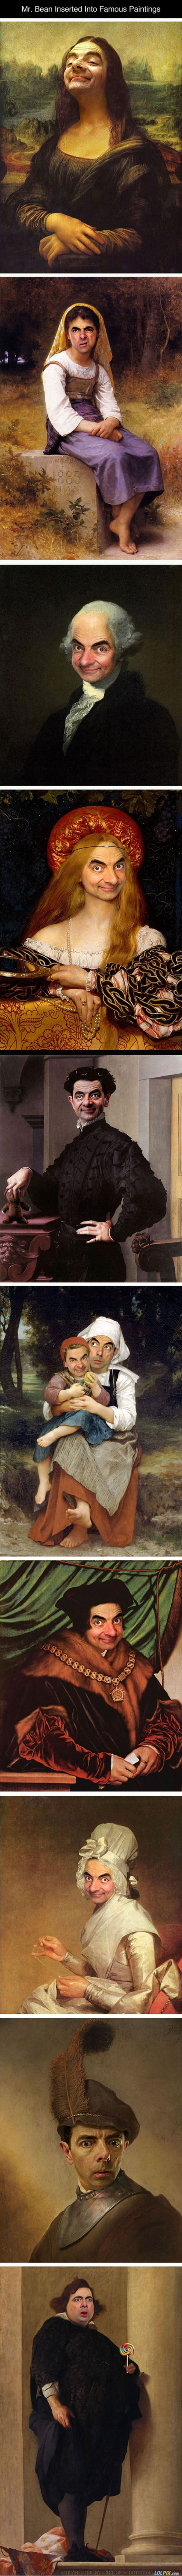 my bean in famous paintings